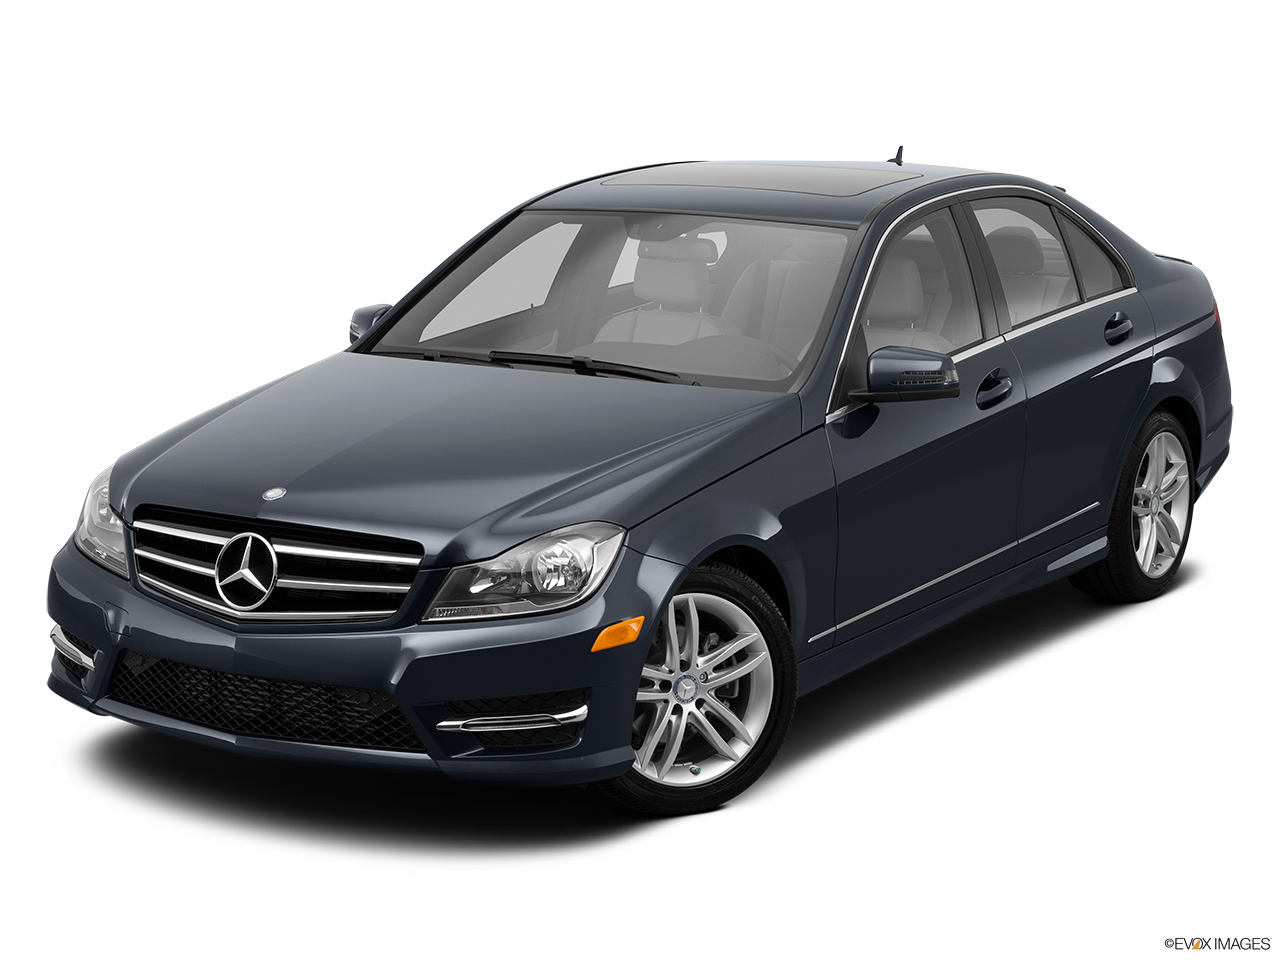 2014 mercedes benz c class sedan c250 luxury rwd for Mercedes benz sedan